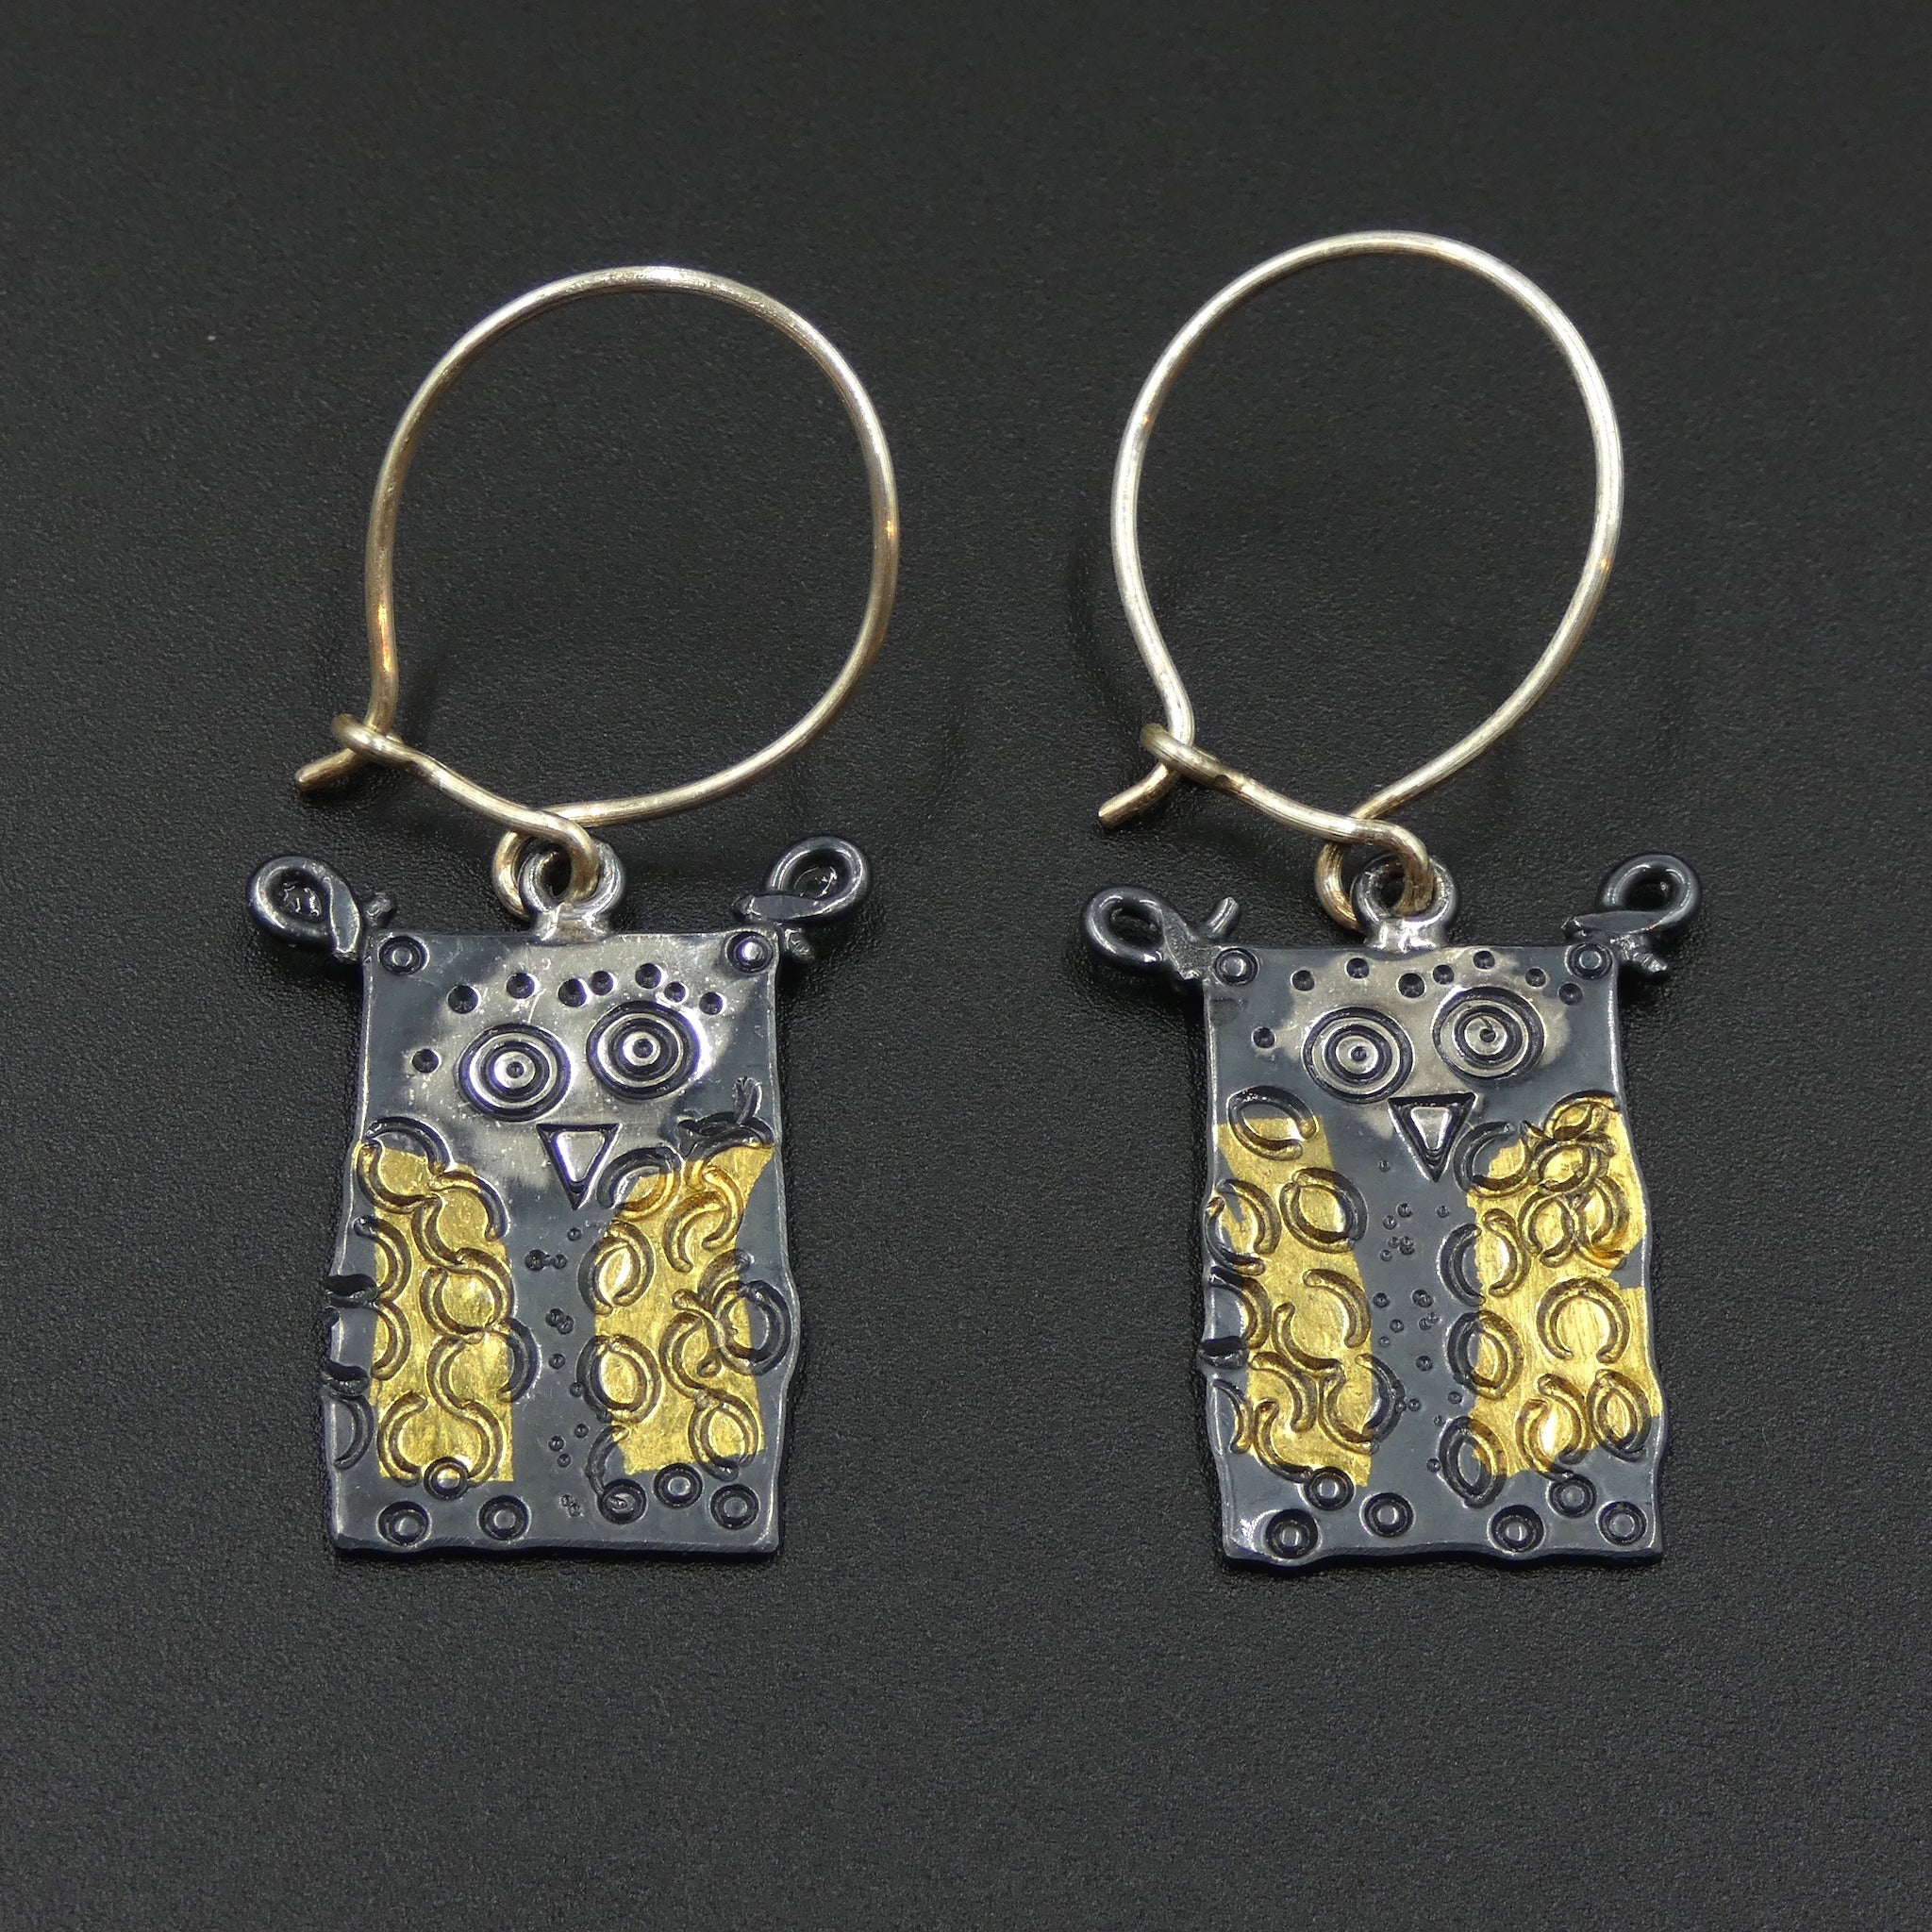 Owl earrings by jewellers John and Dawn Field